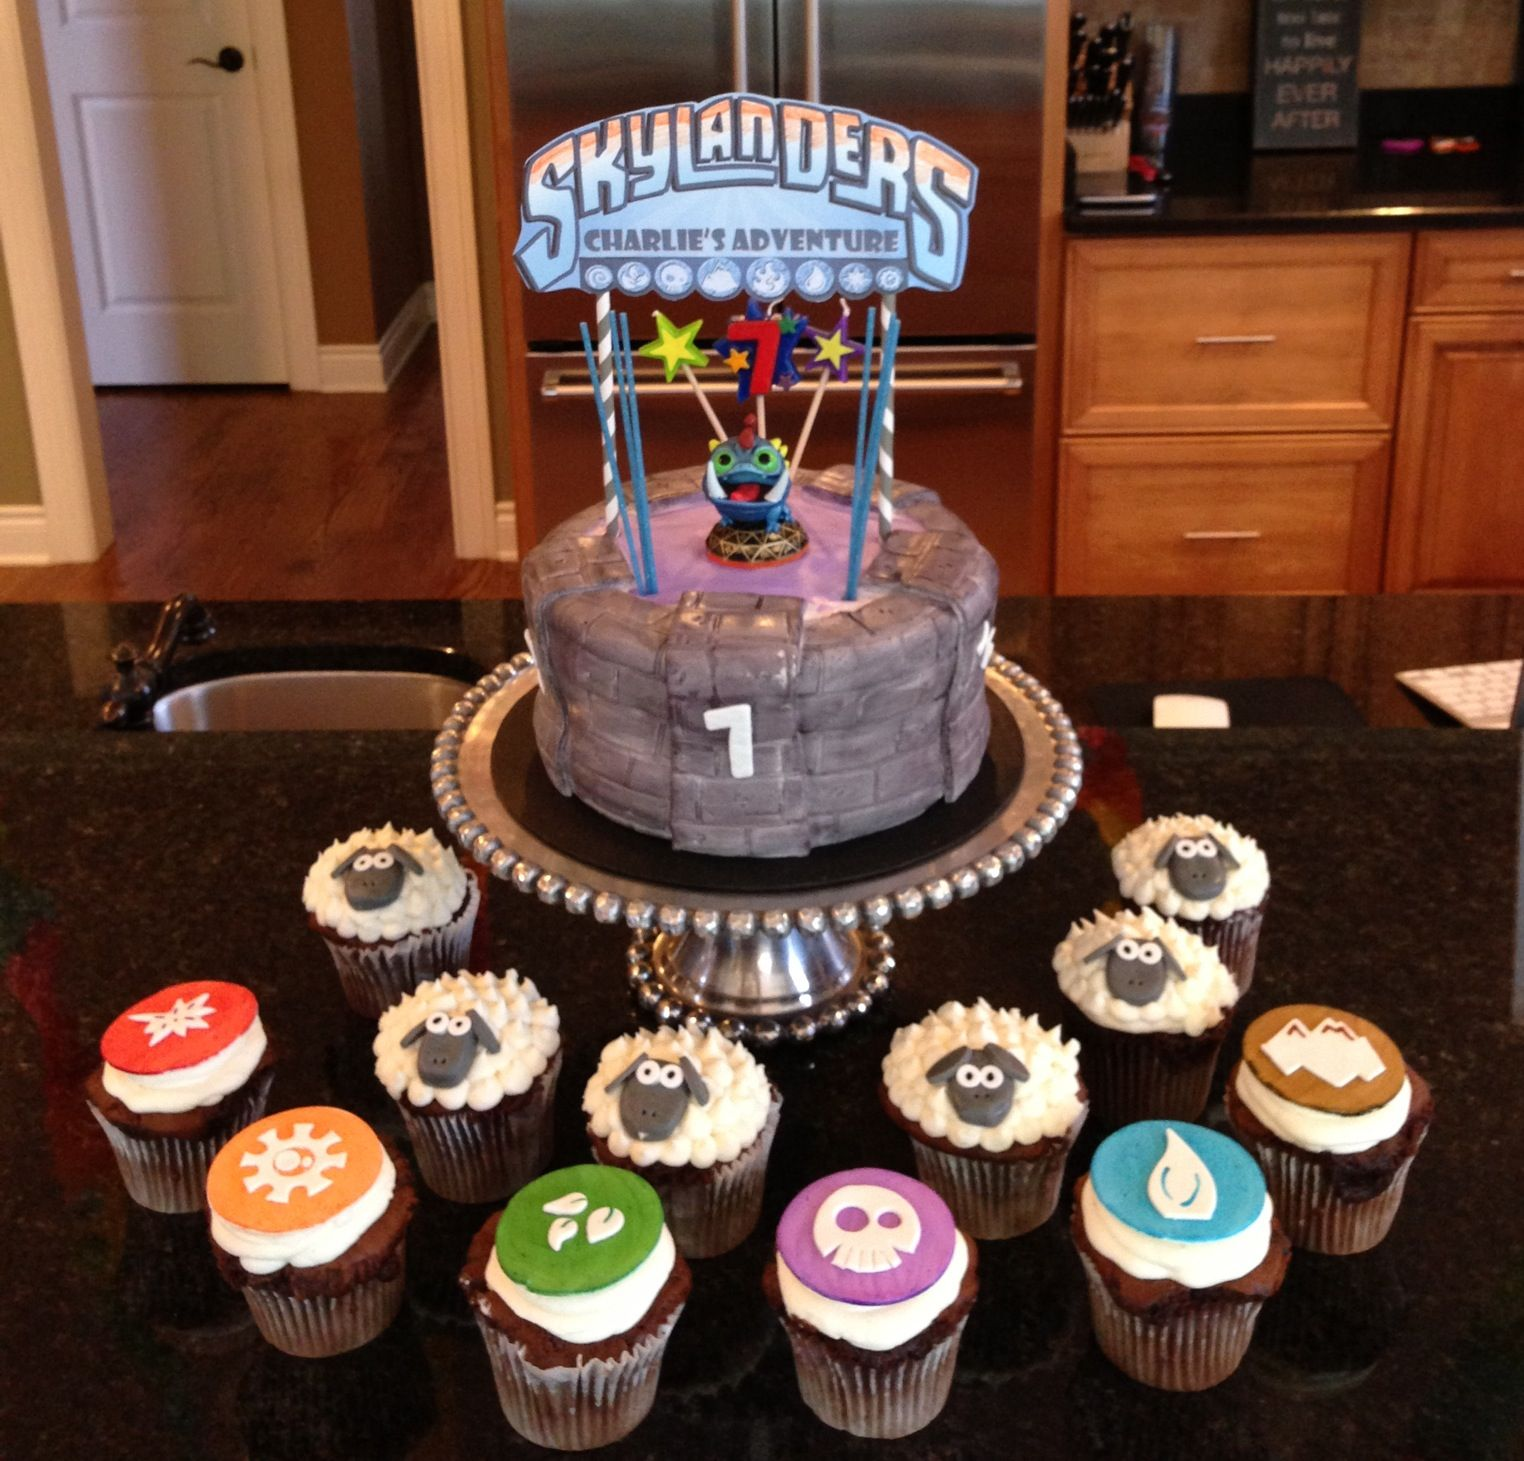 Skylanders Birthday Cake and cupcakes to match the elements and